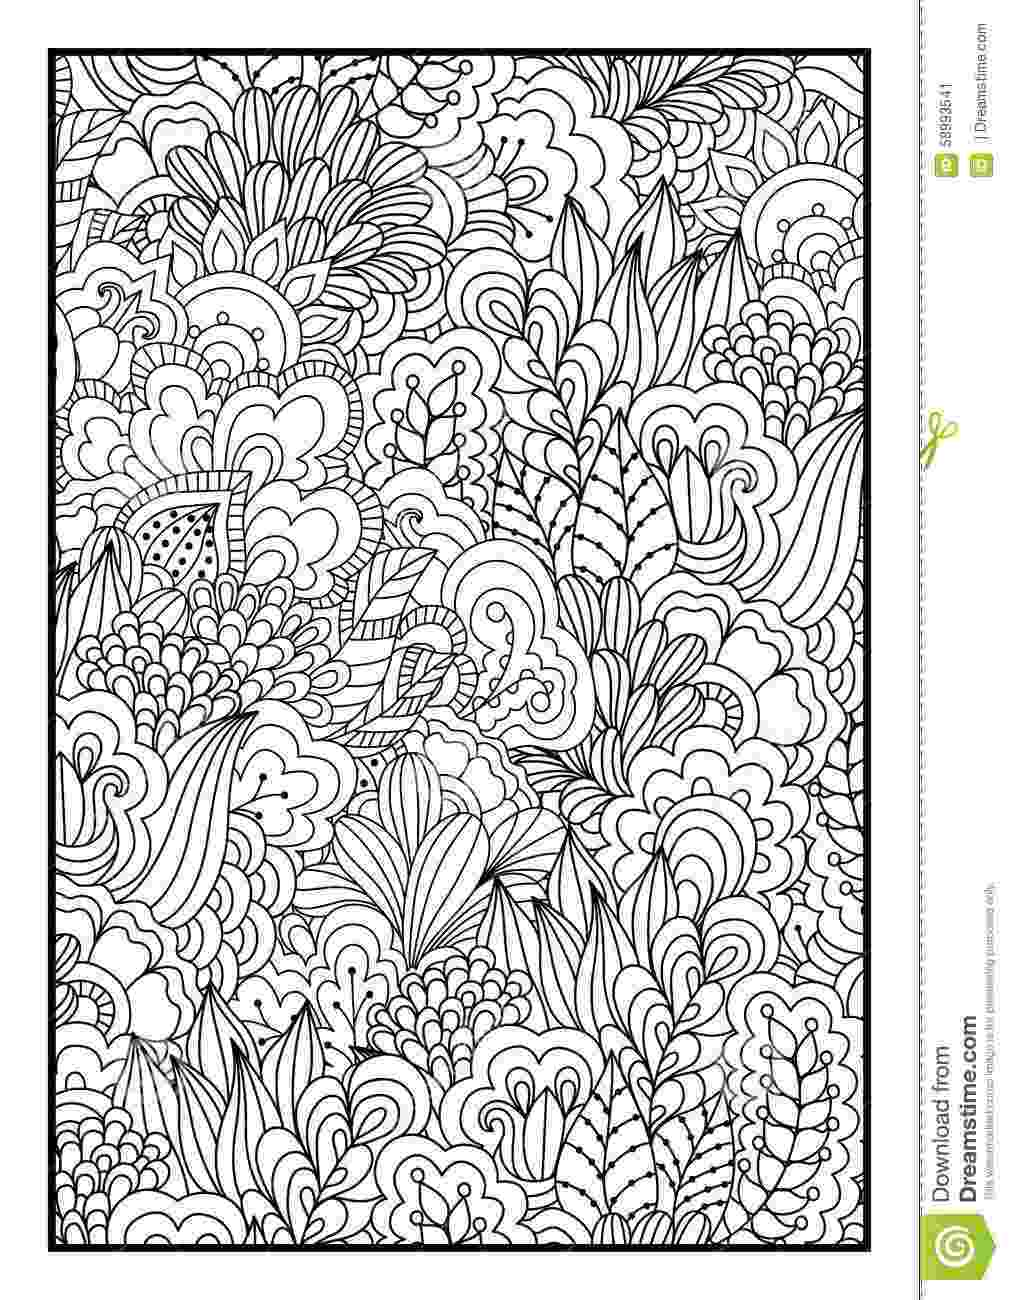 botany coloring book download 17 best images about coloringlineart botany on pinterest botany book coloring download